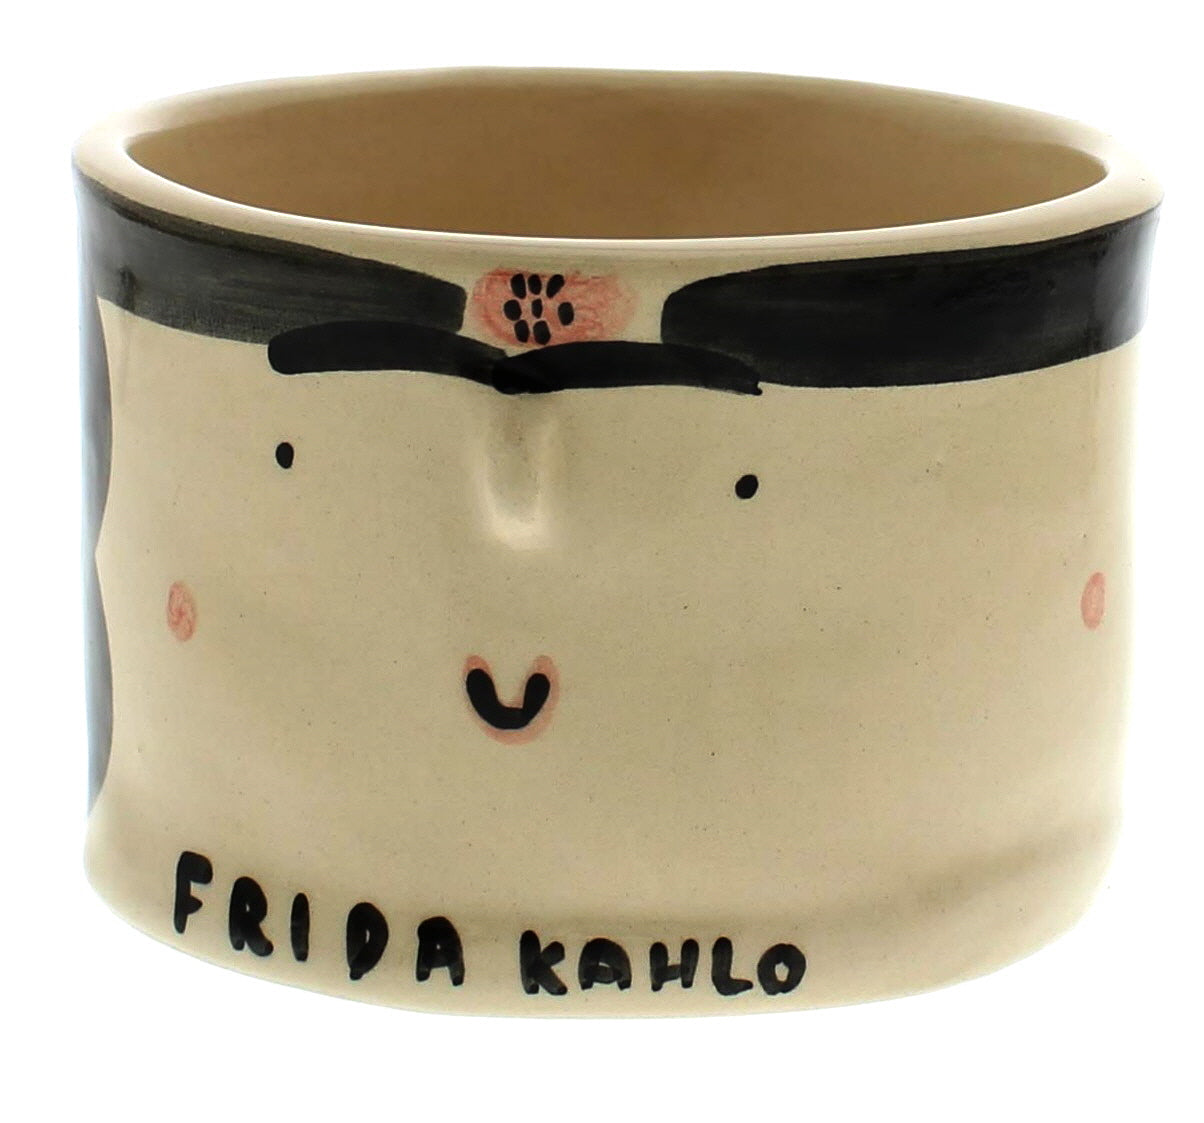 Frida Kahlo Artist Pot